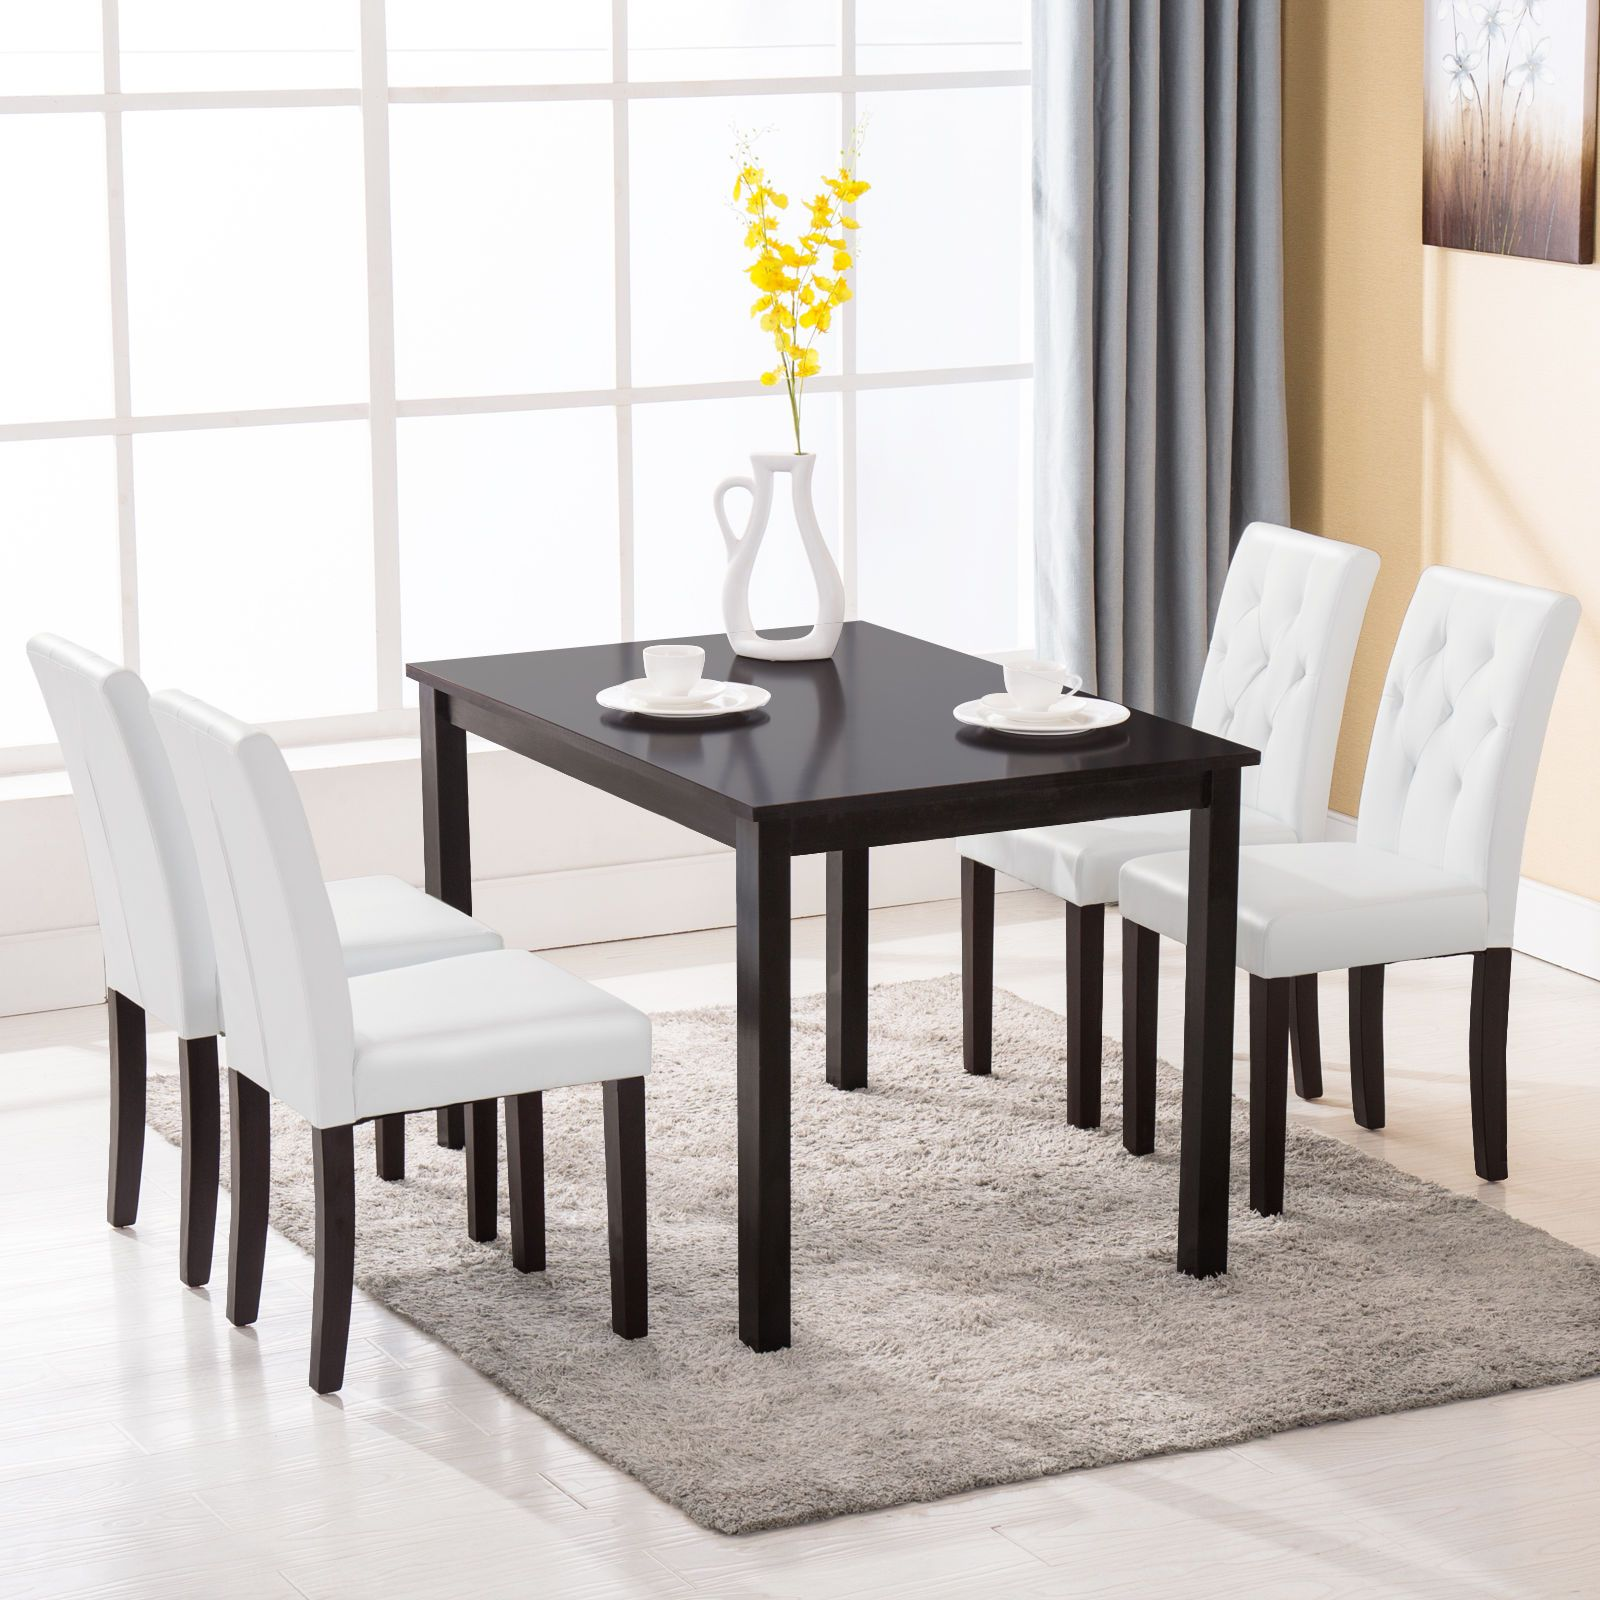 5 Piece Wood White Dining Table Set 4 Chairs Room Kitchen Breakfast Furniture Sturdy Structu Unique Dining Room Kitchen Table Settings Unique Dining Room Table